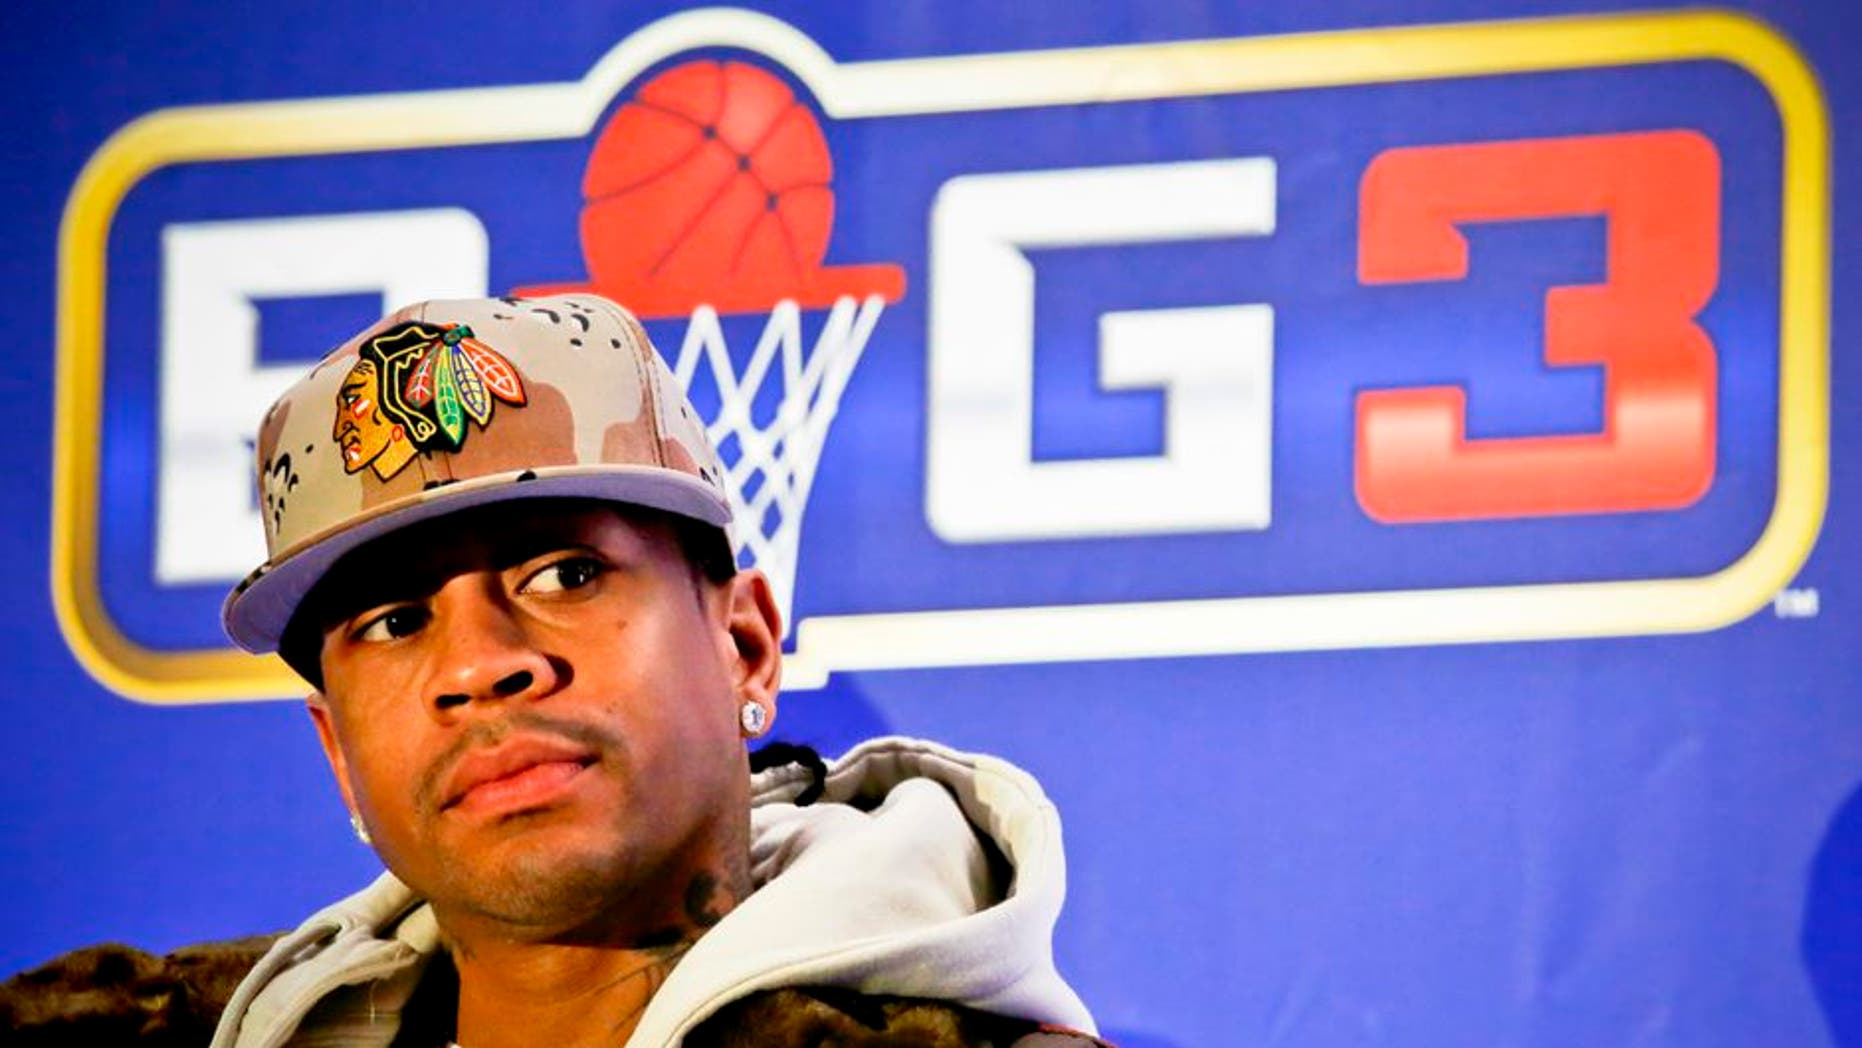 """Former NBA player Allen Iverson listens during a press conference launching the """"BIG3, a 3-on-3 half-court professional basketball league for retired players, Wednesday Jan. 11, 2017, in New York. Iverson will coach a team and play in the new league. (AP Photo/Bebeto Matthews)"""